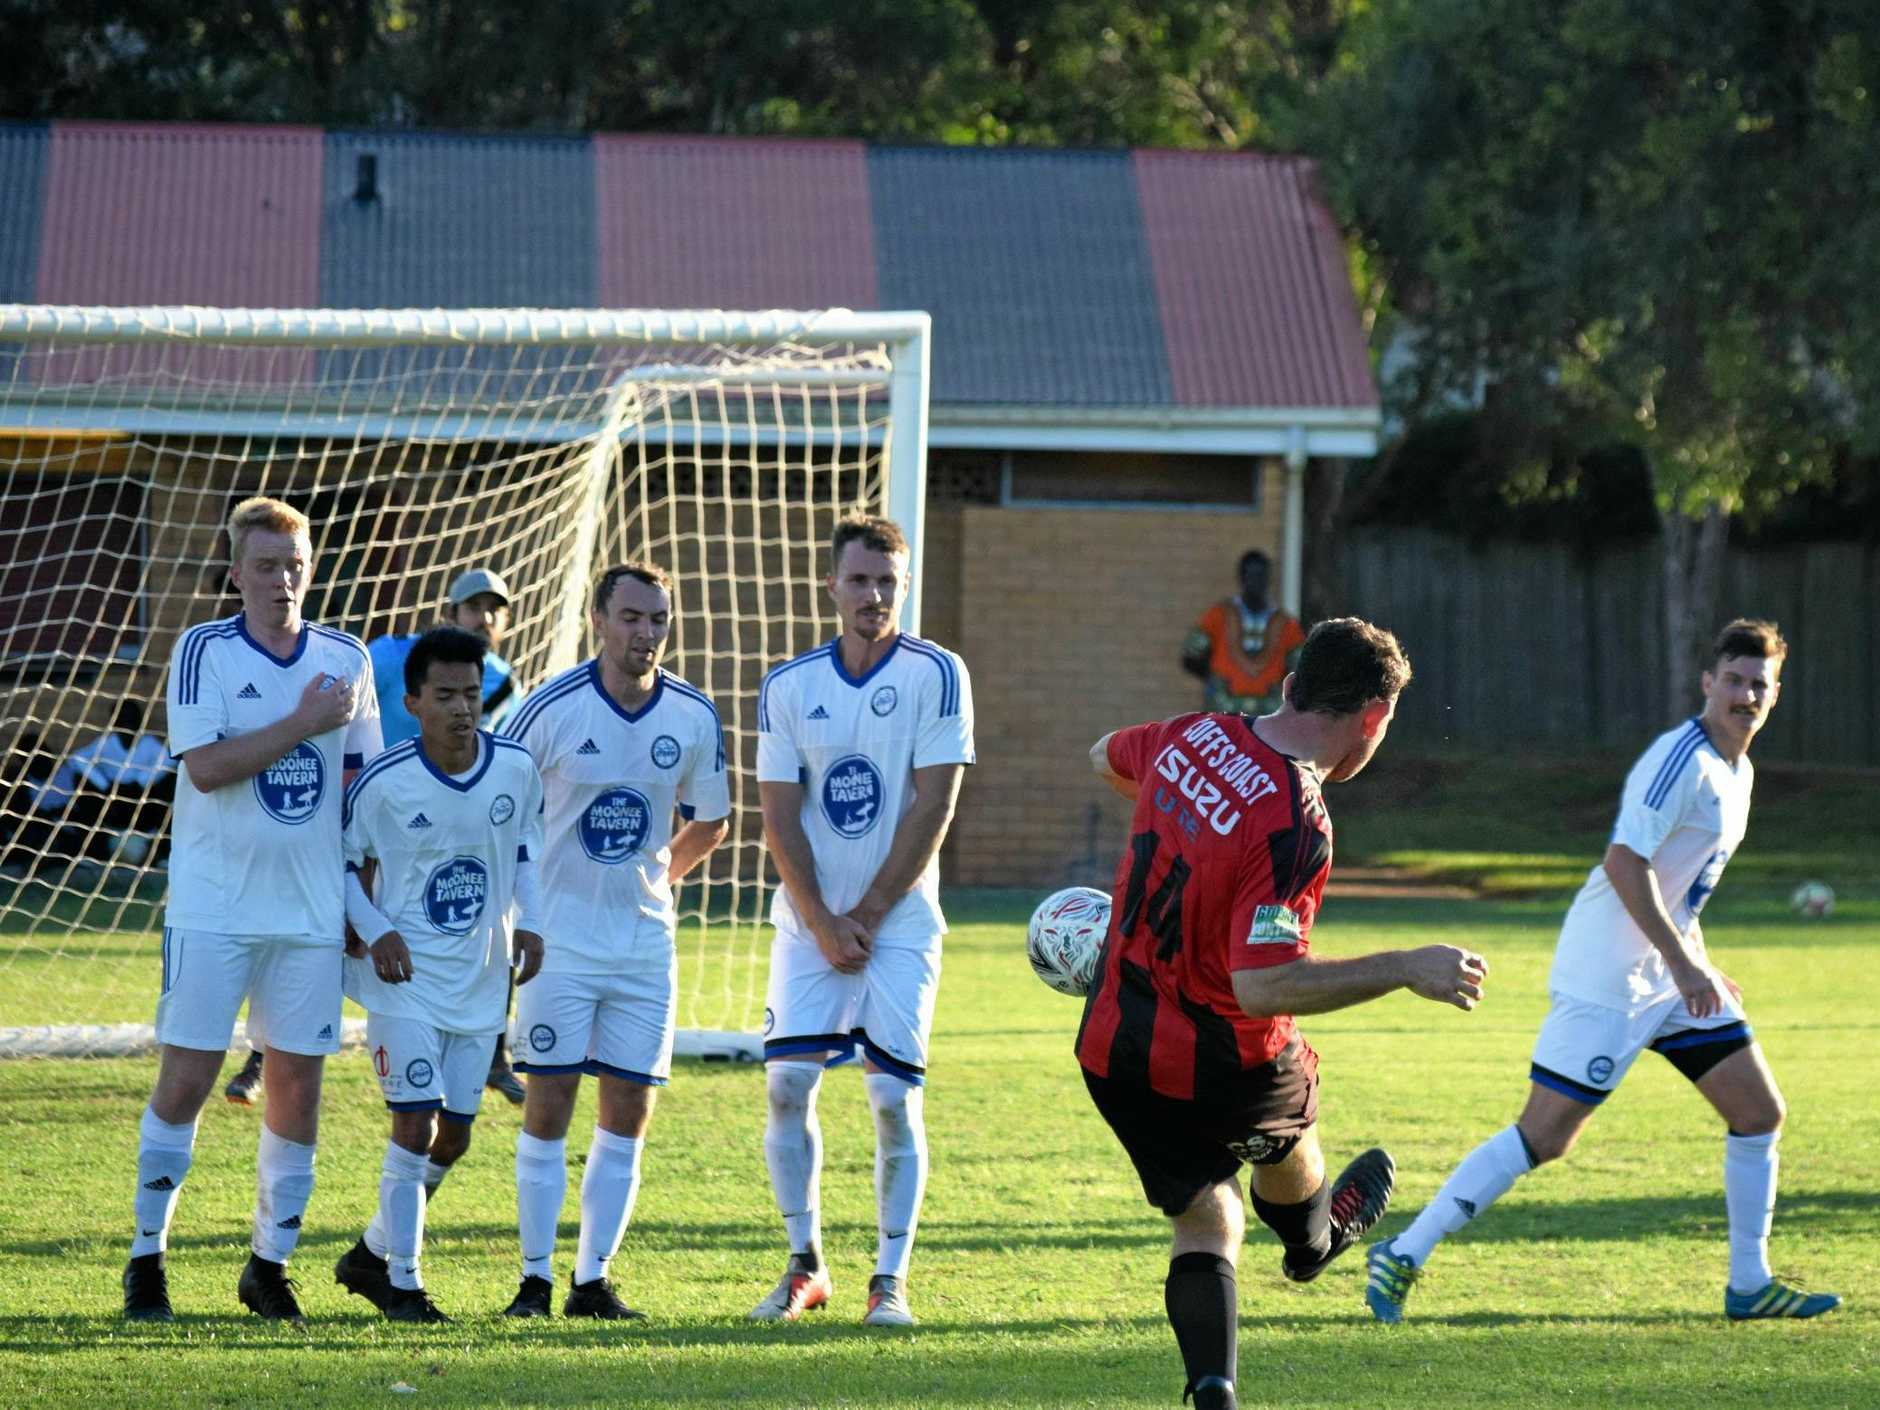 DEAD BALL MASTER: Coffs City United Lions player Garbahn Friel bends a kick through the Northern Storm wall on Saturday for his side's third goal.